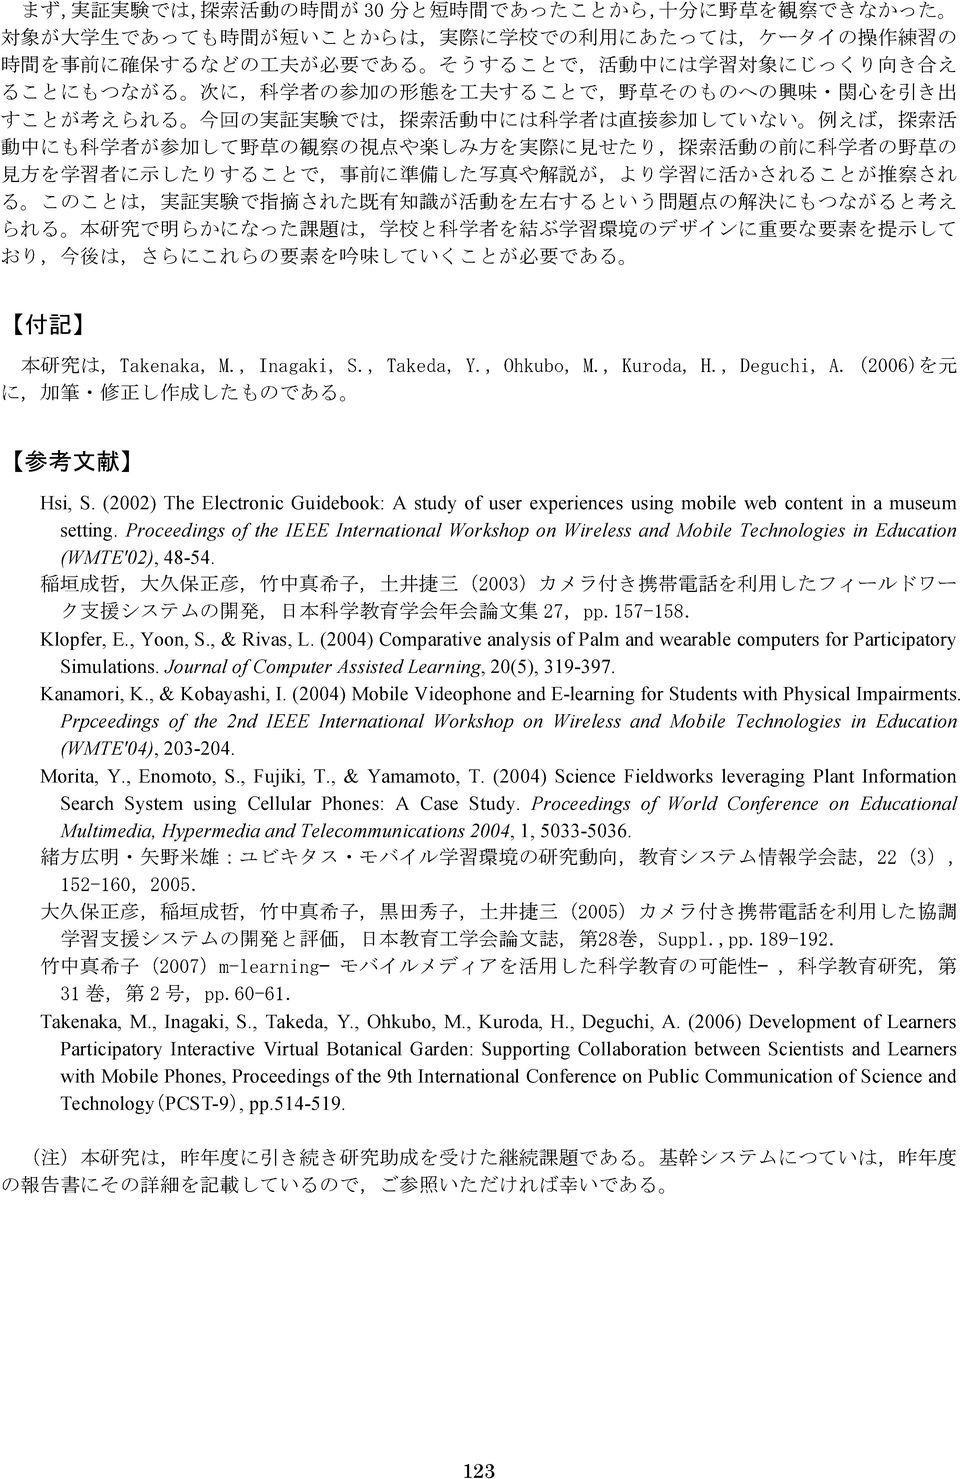 (2004) Comparative analysis of Palm and wearable computers for Participatory Simulations. Journal of Computer Assisted Learning, 20(5), 319-397. Kanamori, K., & Kobayashi, I.